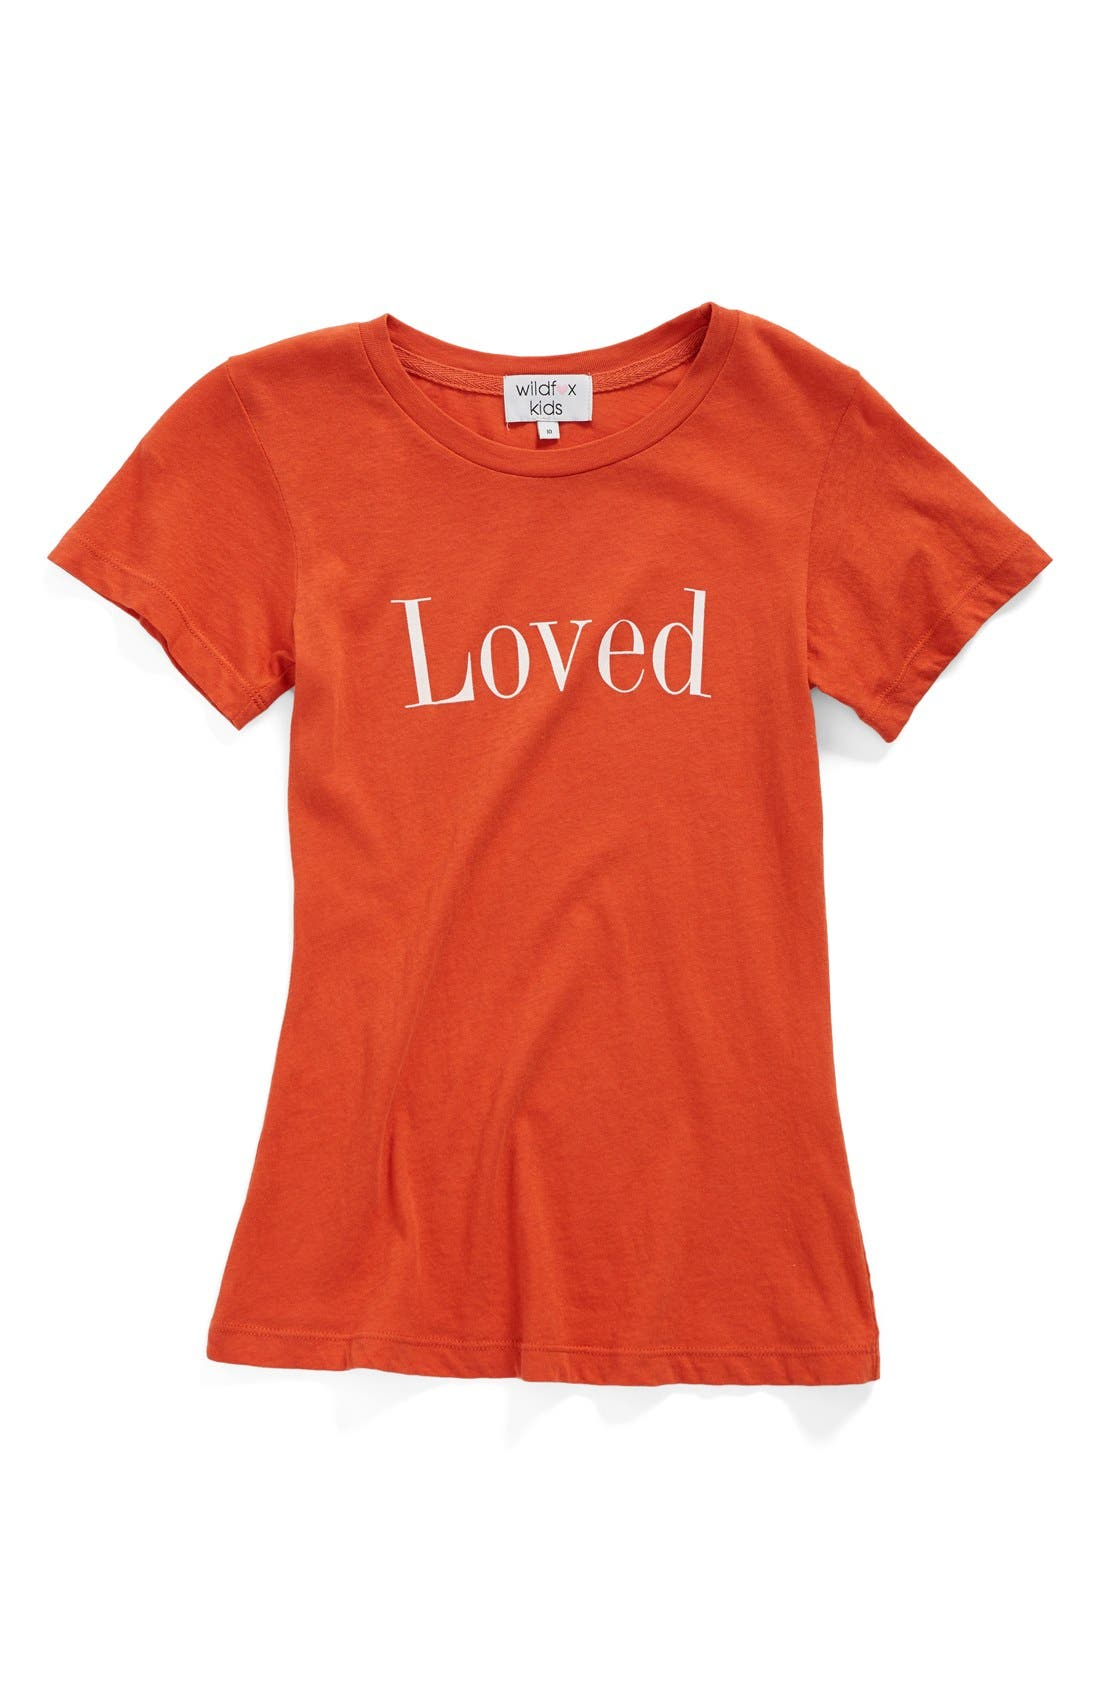 Main Image - Wildfox 'Loved' Graphic Cotton Tee (Little Girls & Big Girls)